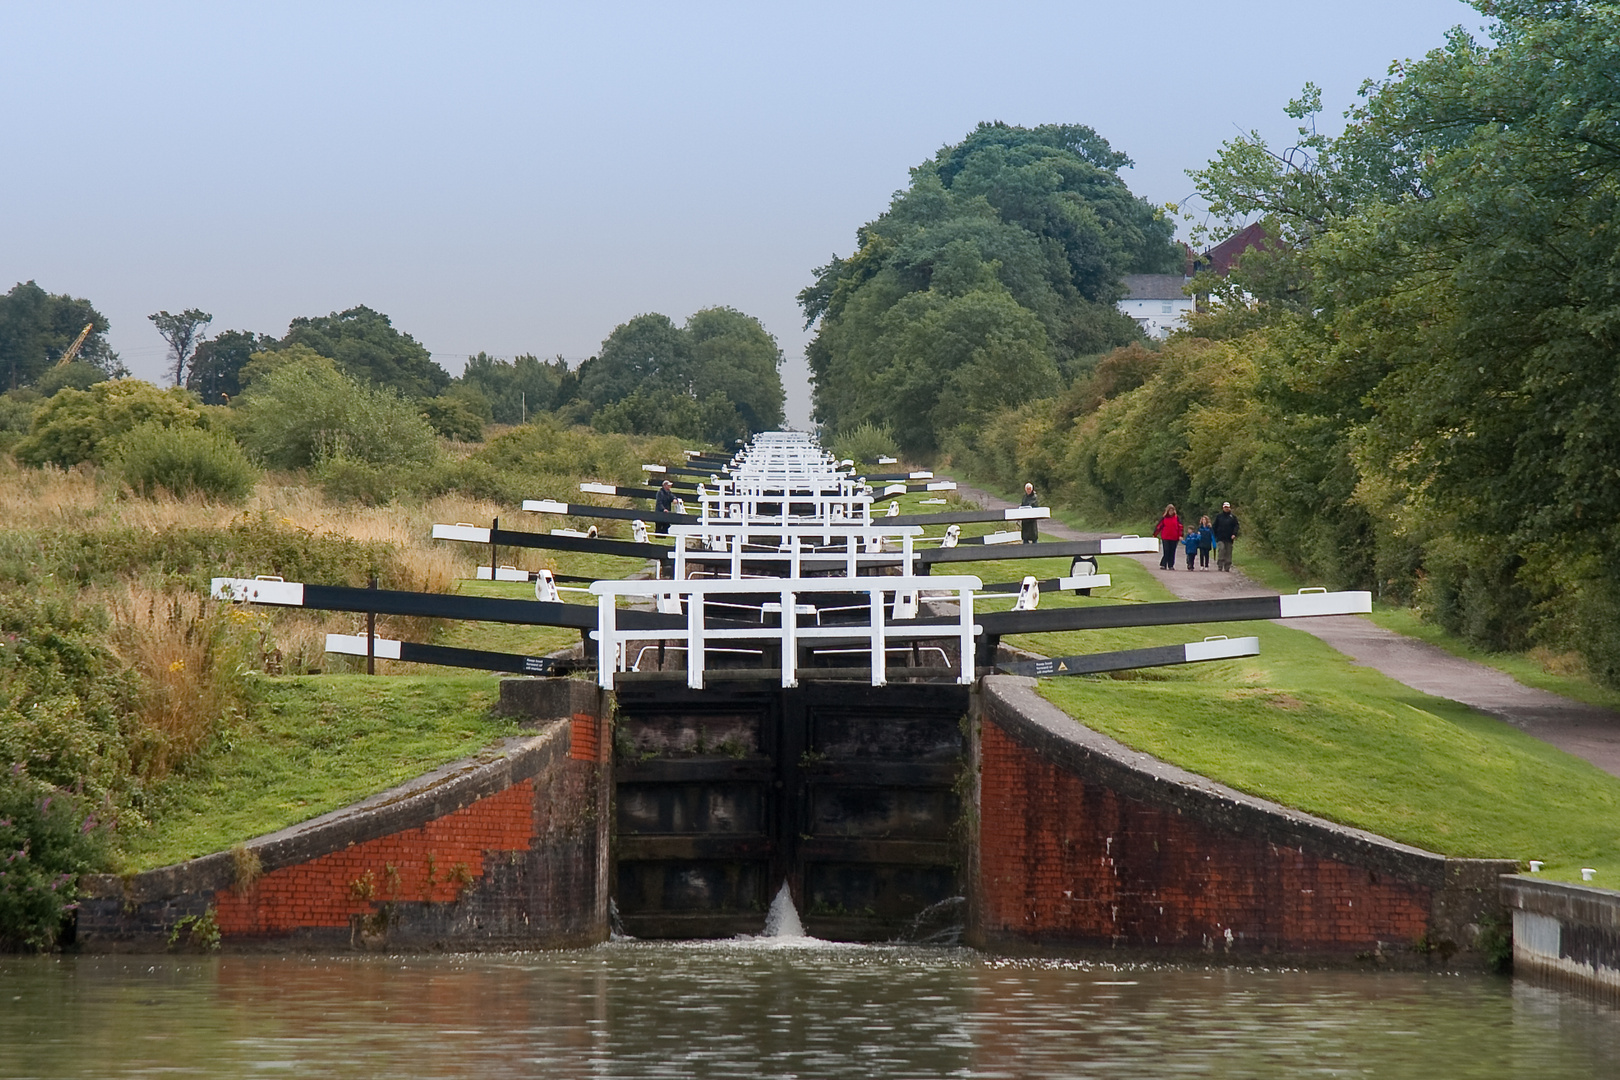 Am Kennet and Avon Canal #2